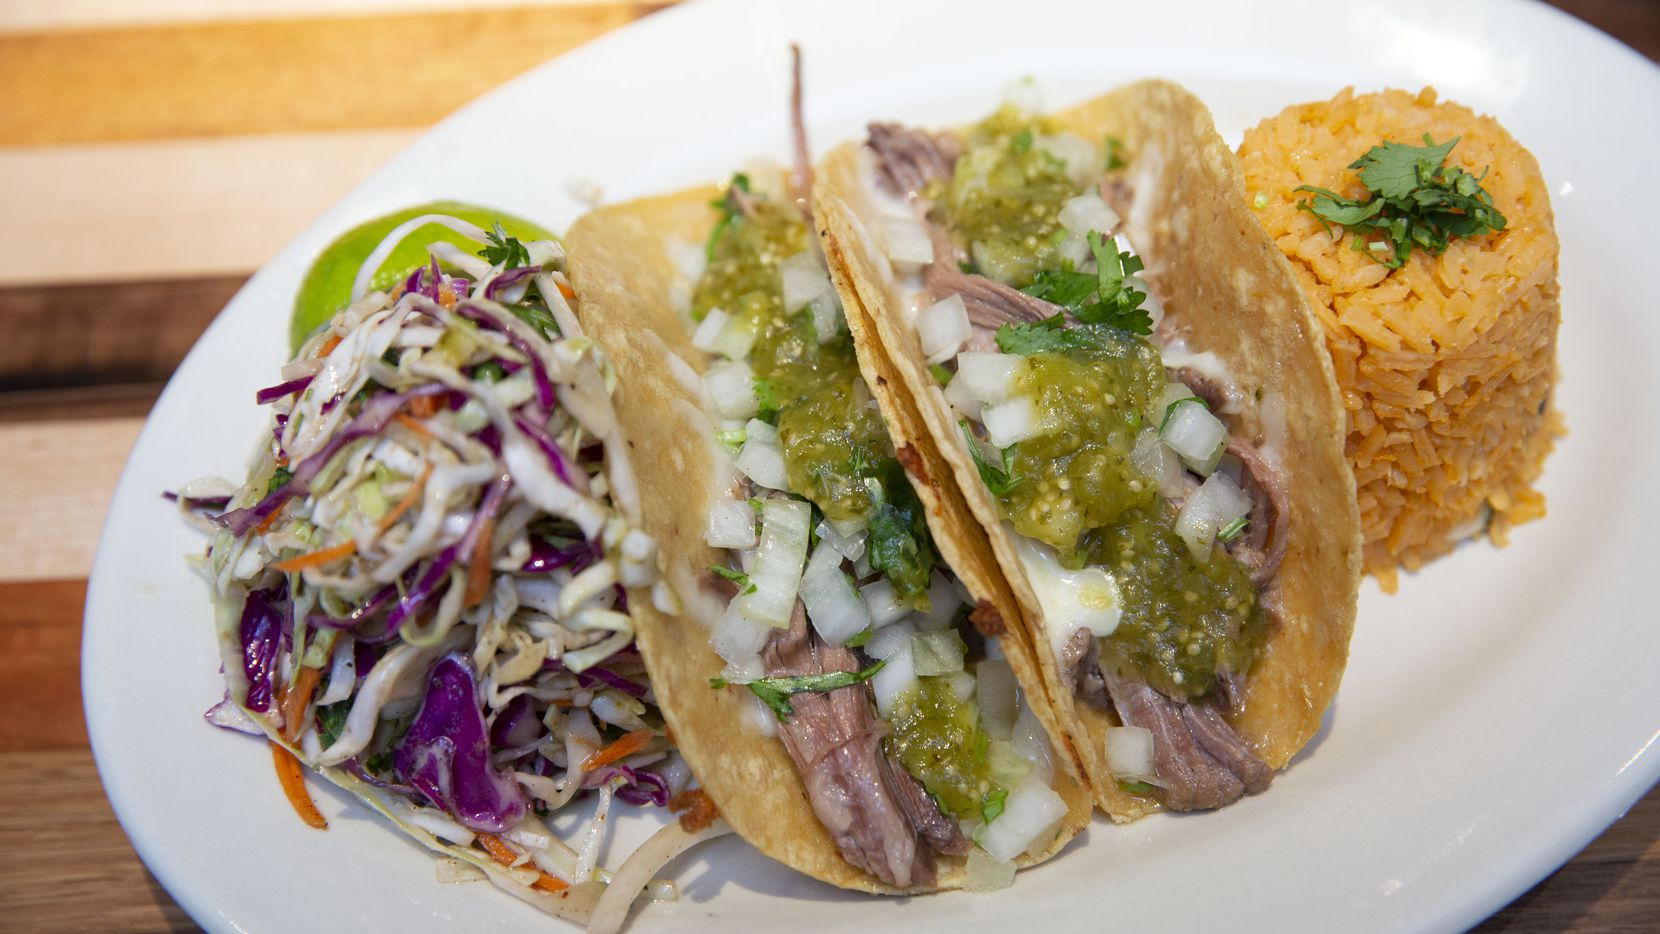 Brisket tacos are one of Mesero's most popular items. The new location in the Preston Hollow Village shopping center in Dallas opened Nov. 25, 2019.